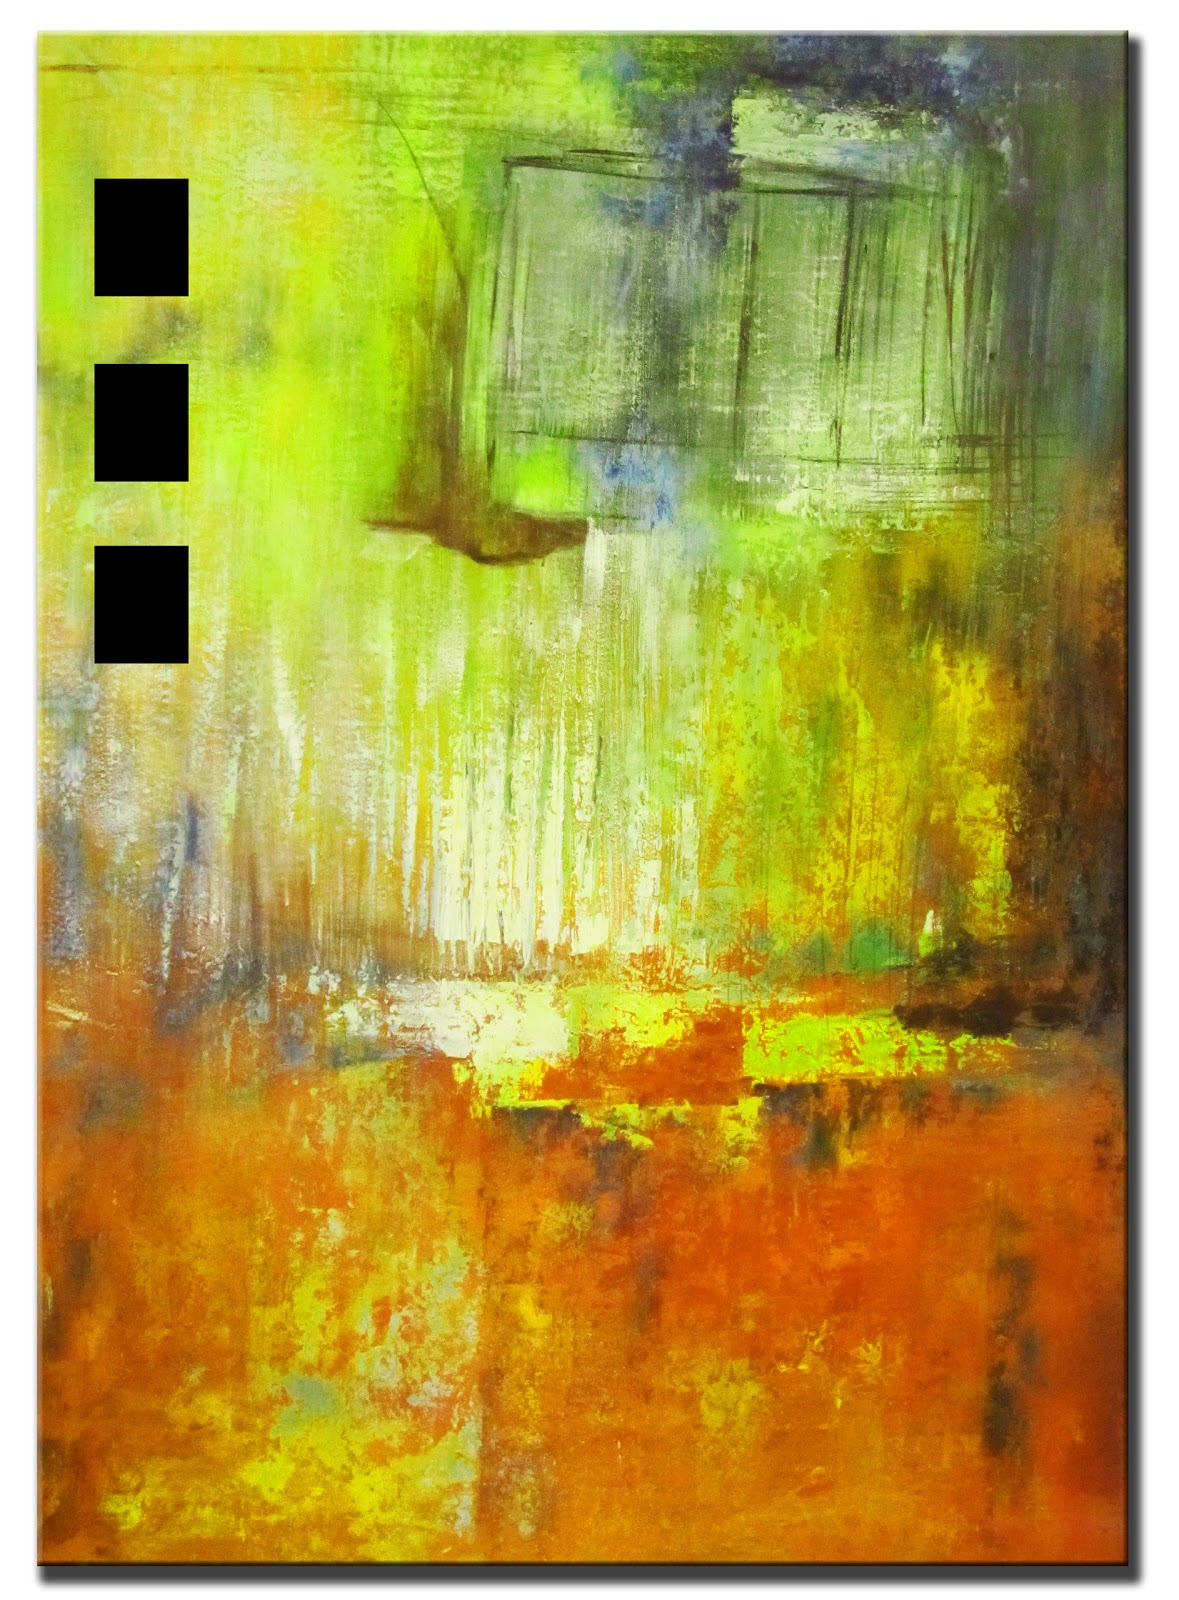 Abstract Paintings By Dora Woodrum: Abstract Art By Dora